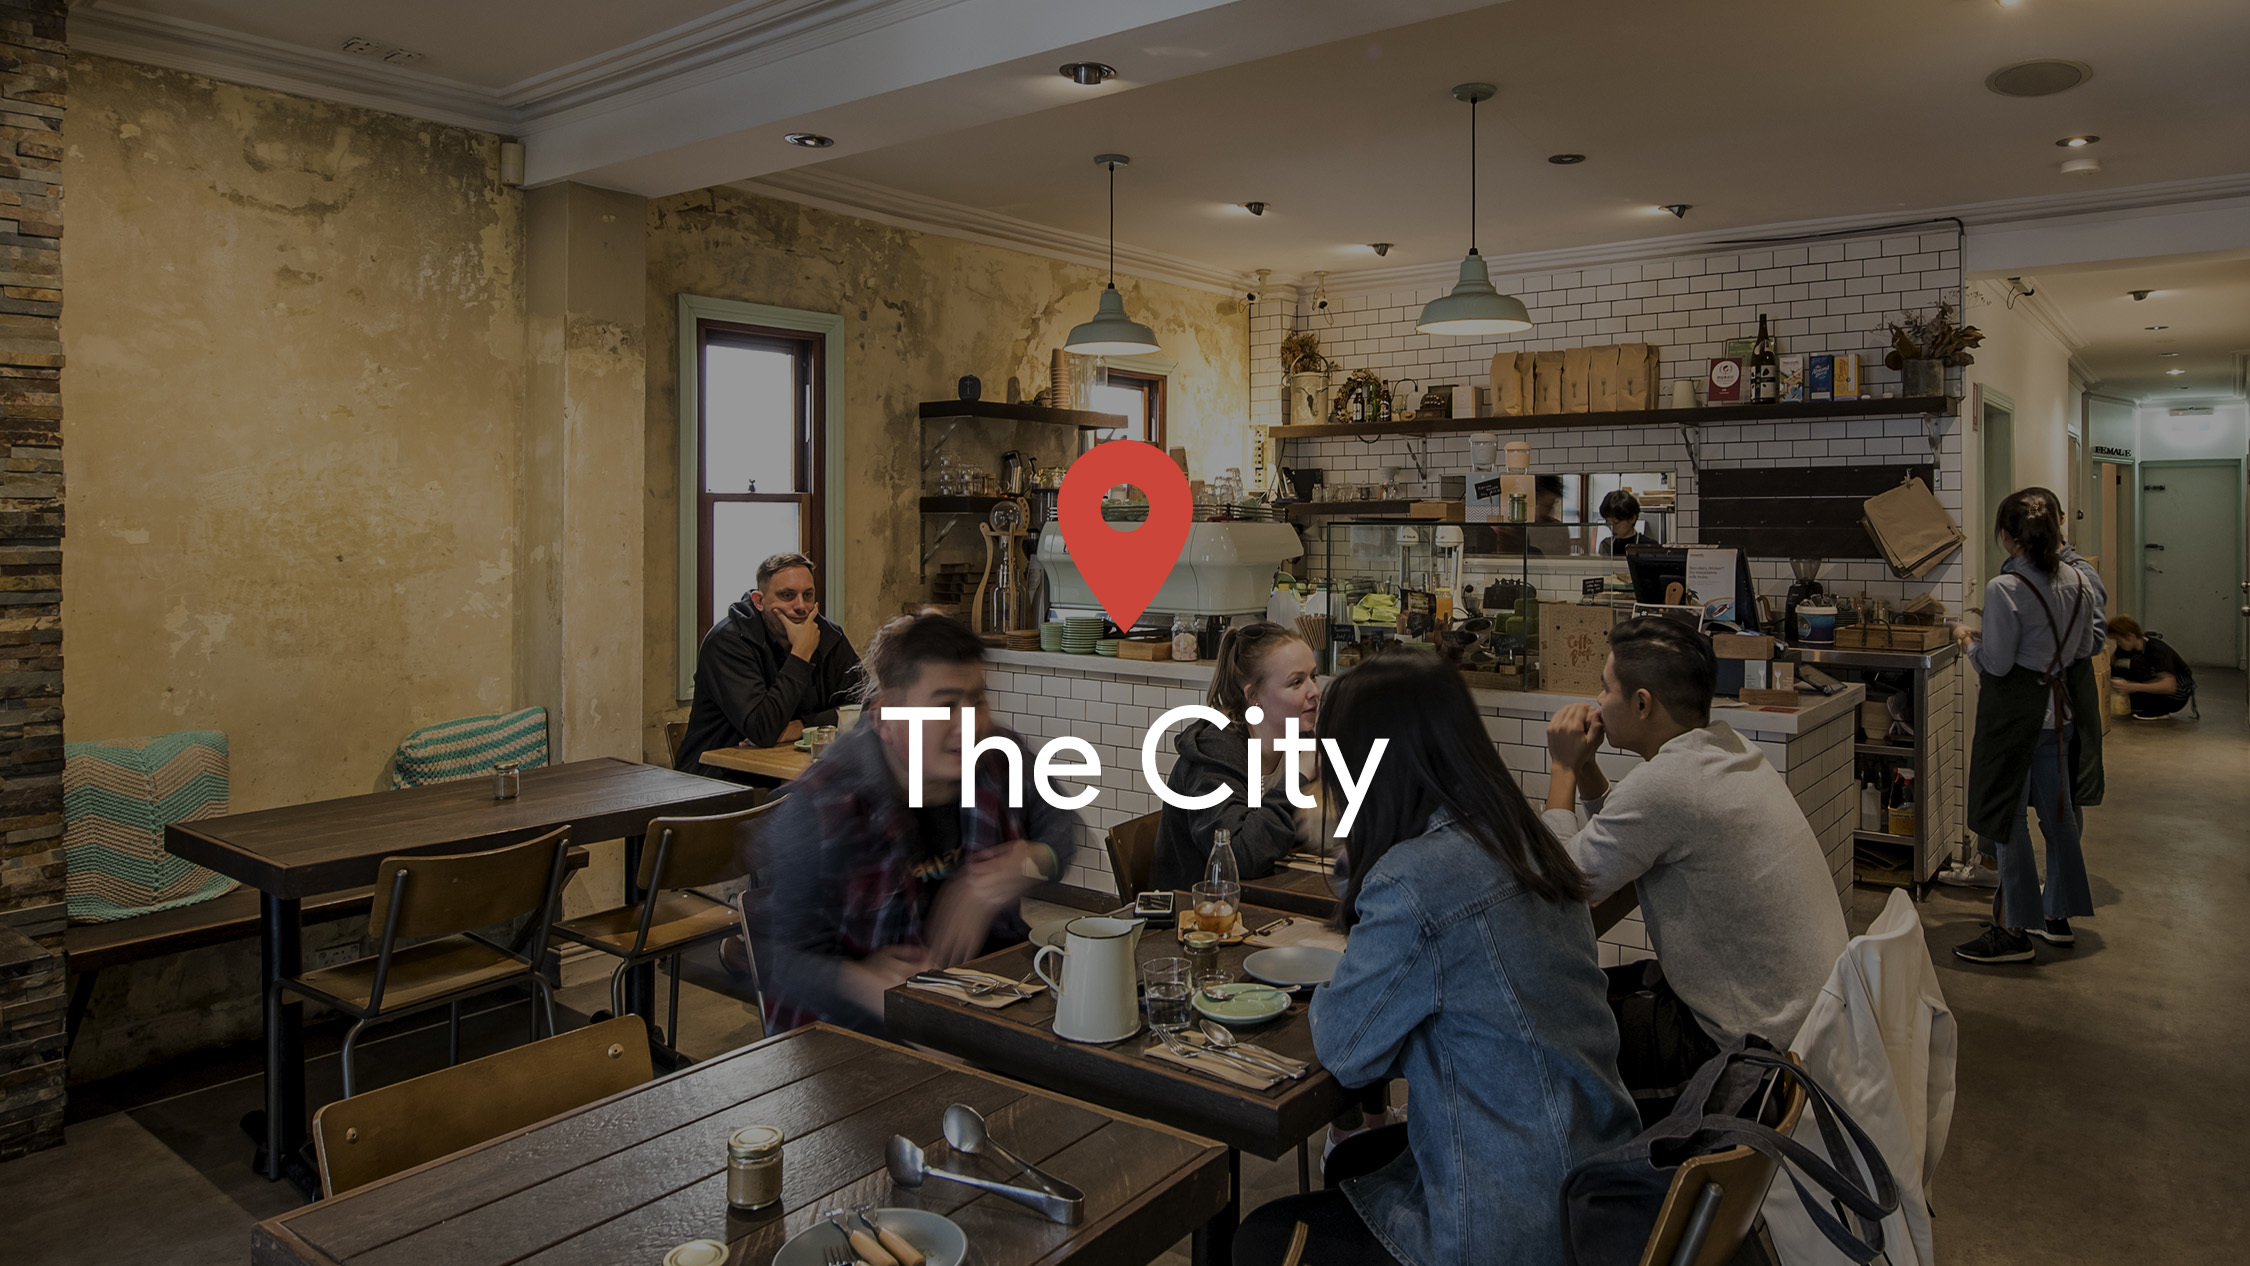 Drop a pin in: The City